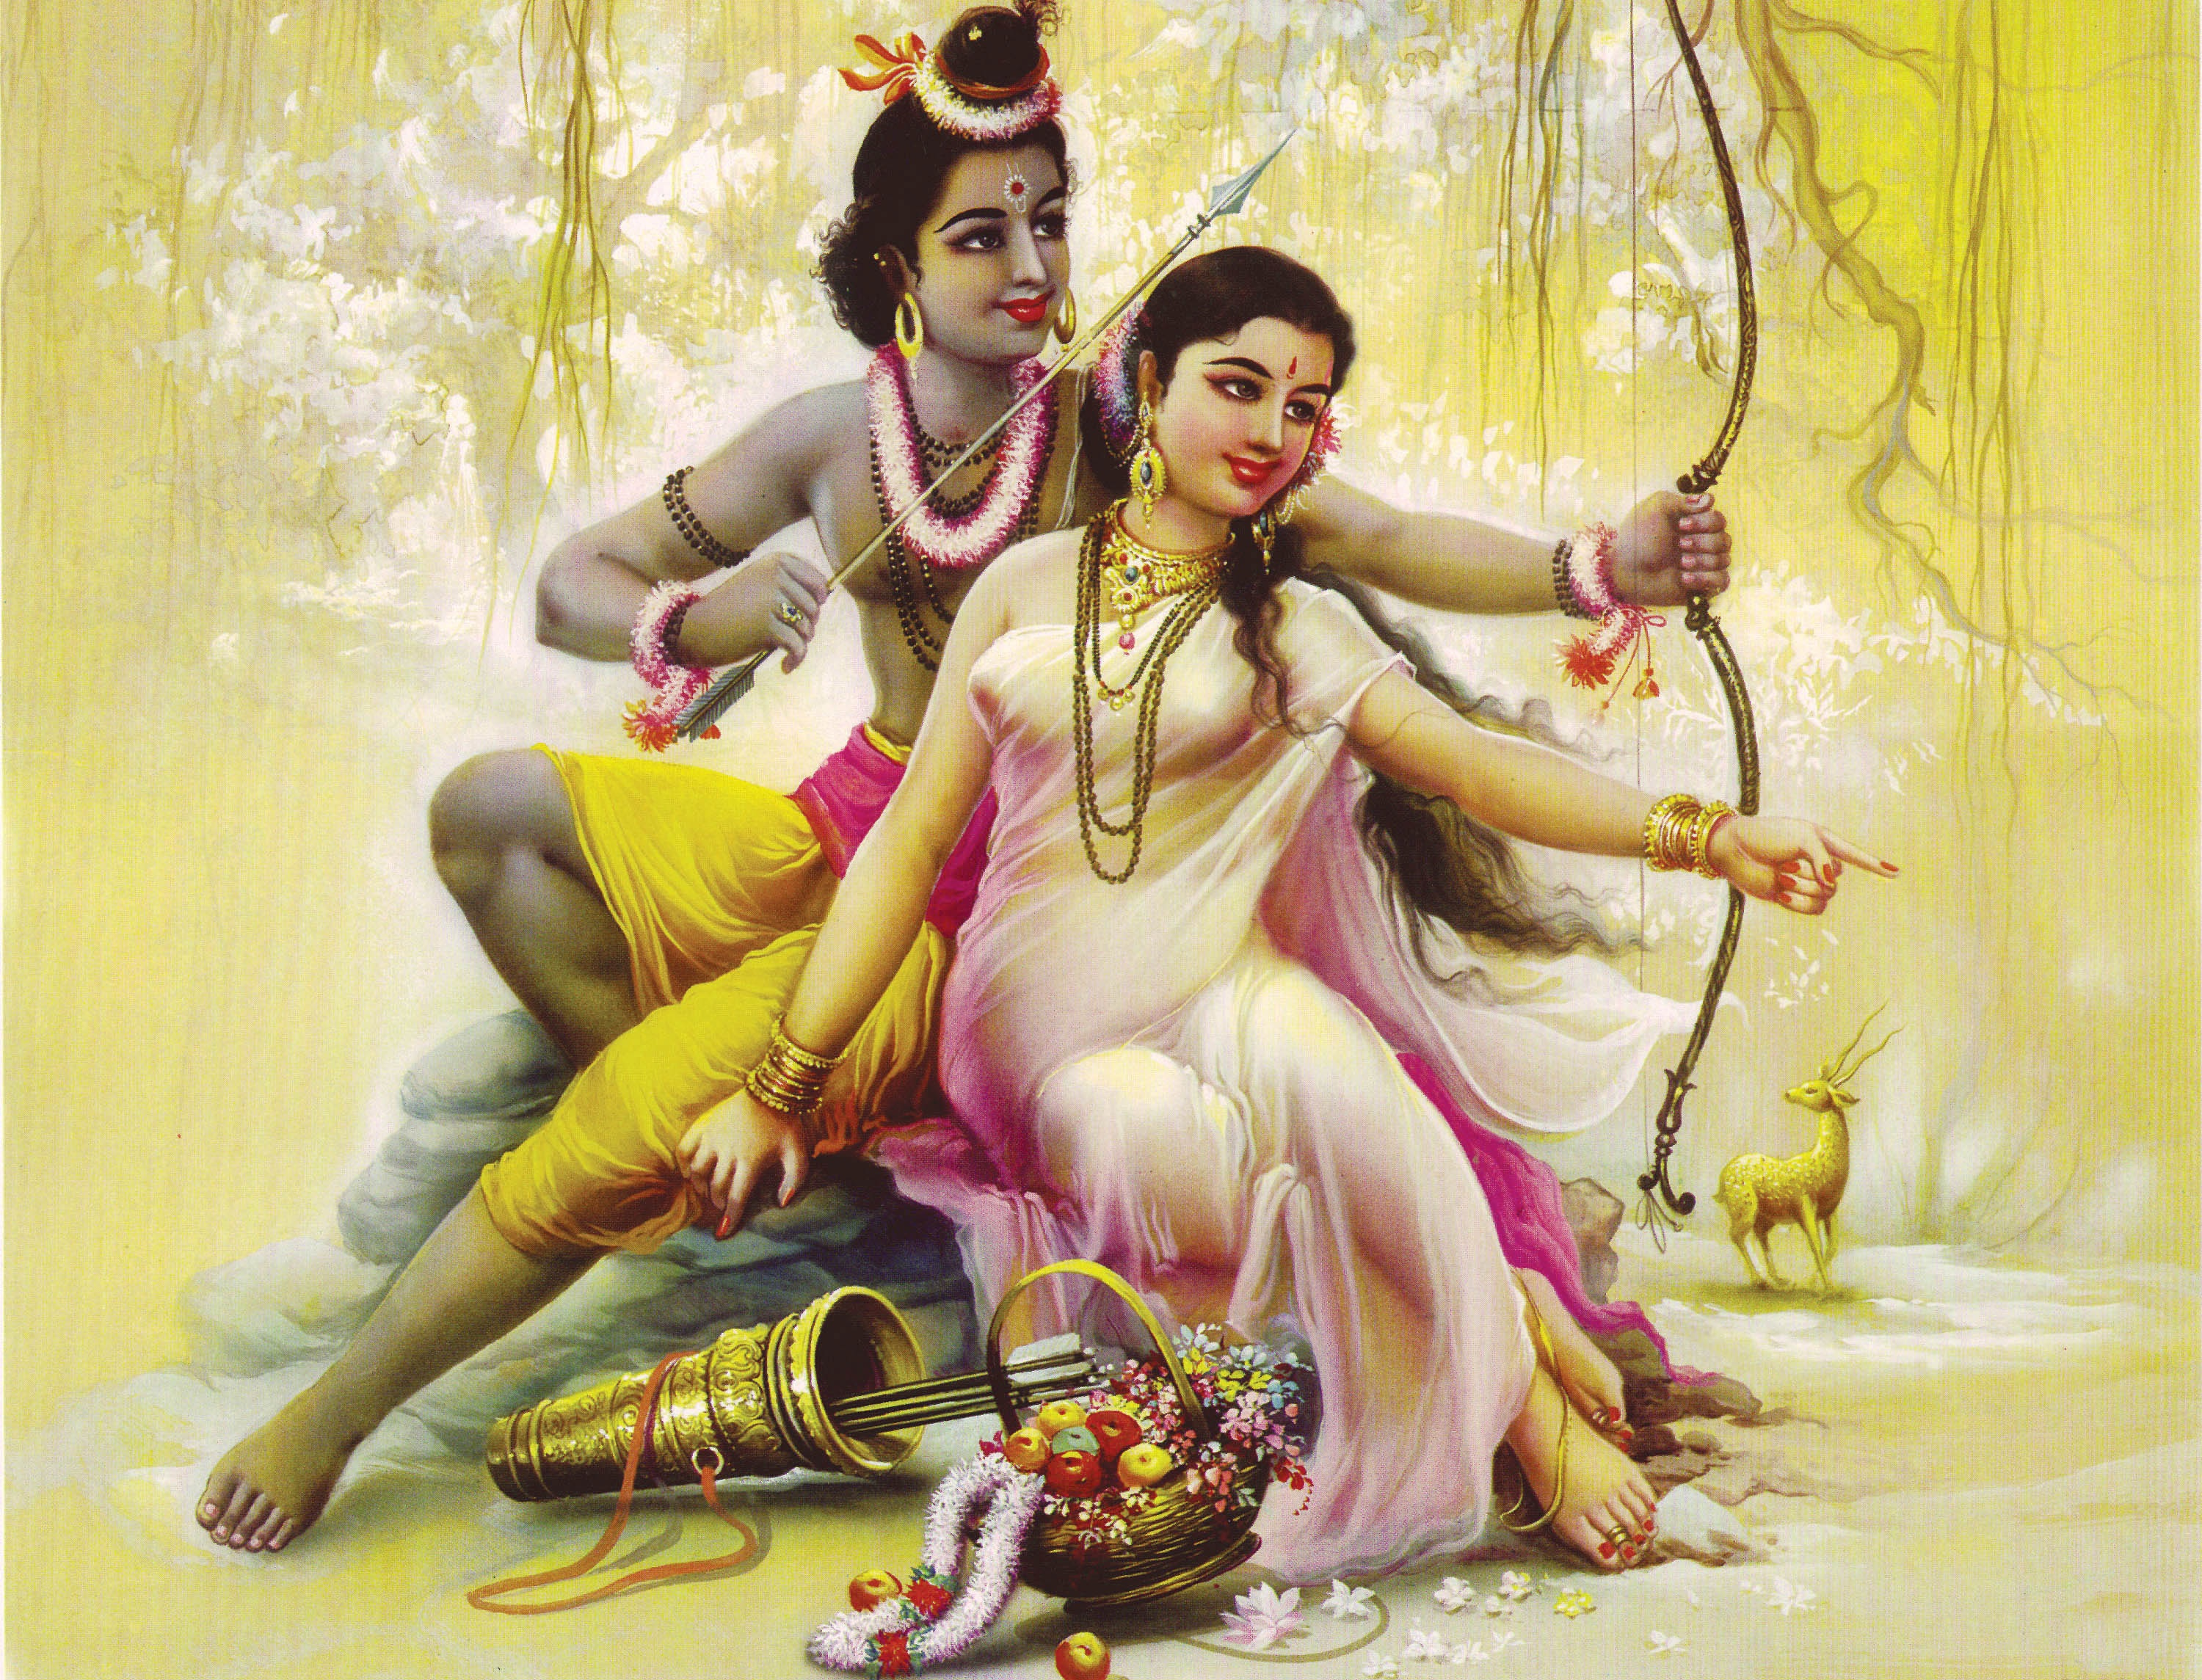 scarriet poetry culture page  the ra ana is a divine r ce of undying love between sita and rama two aspects of one divinity whose separation from each other is illusion acted out